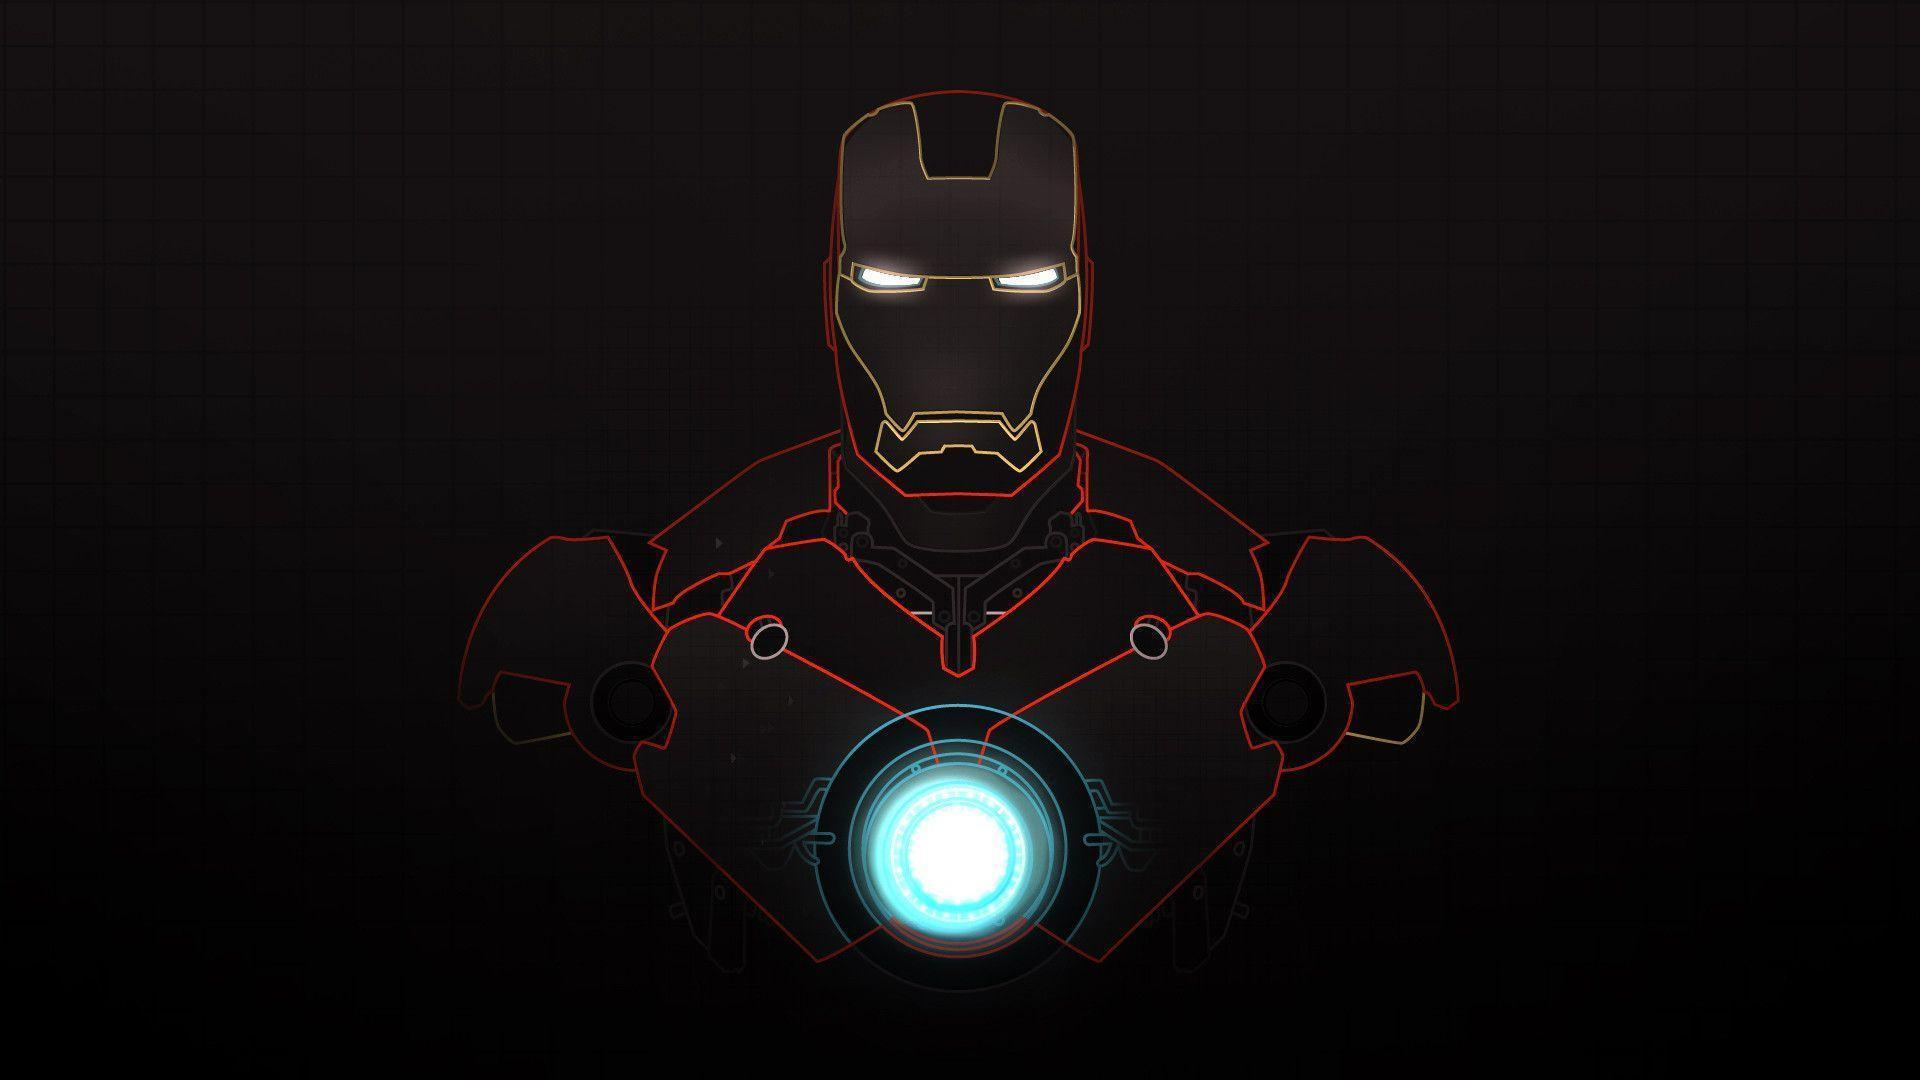 Ironman Wallpaper Iphone 4 Wallpaper | HDMarvelWallpaper